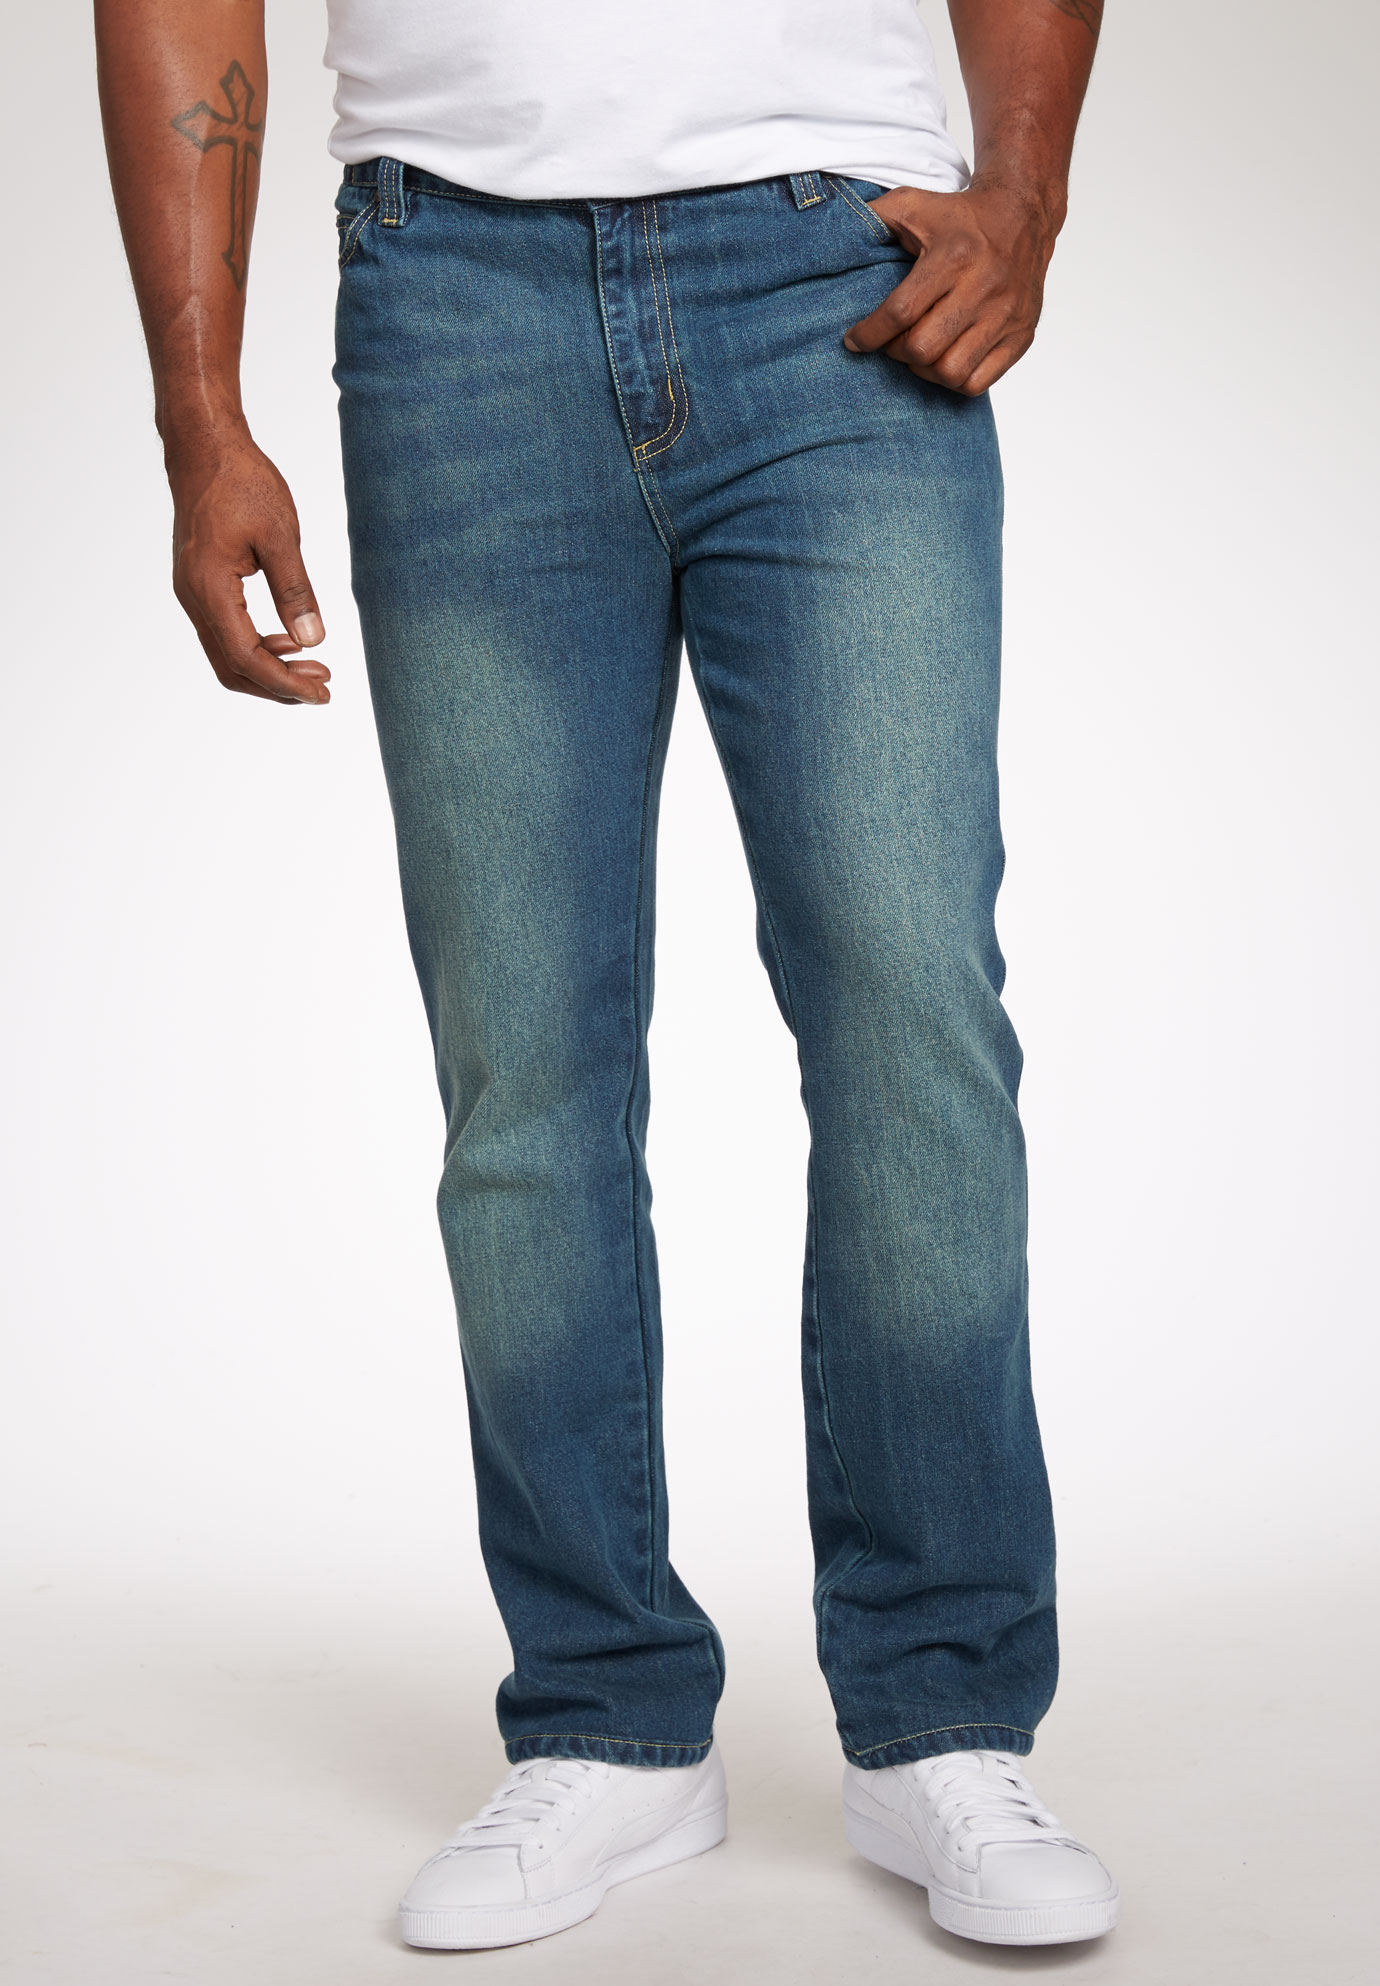 Liberty Blues® Straight Fit Side Elastic 5-Pocket Jeans,